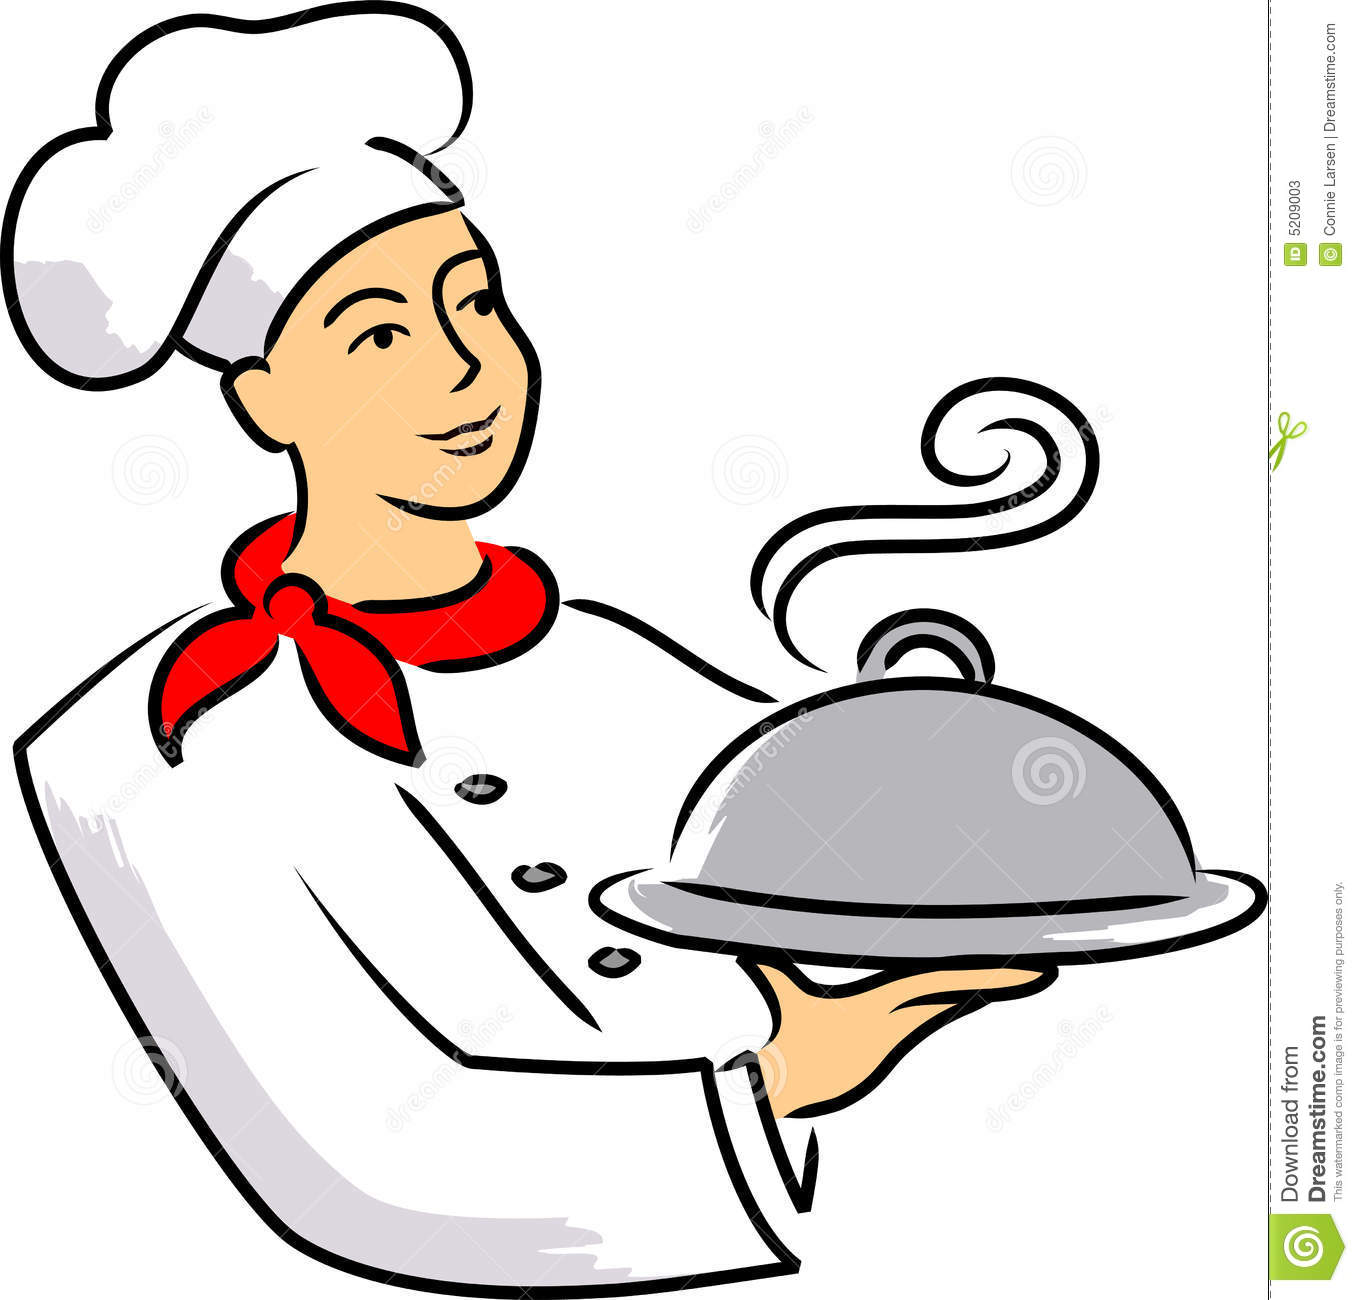 Cartoon illustration of a chef carrying a covered plate of food.